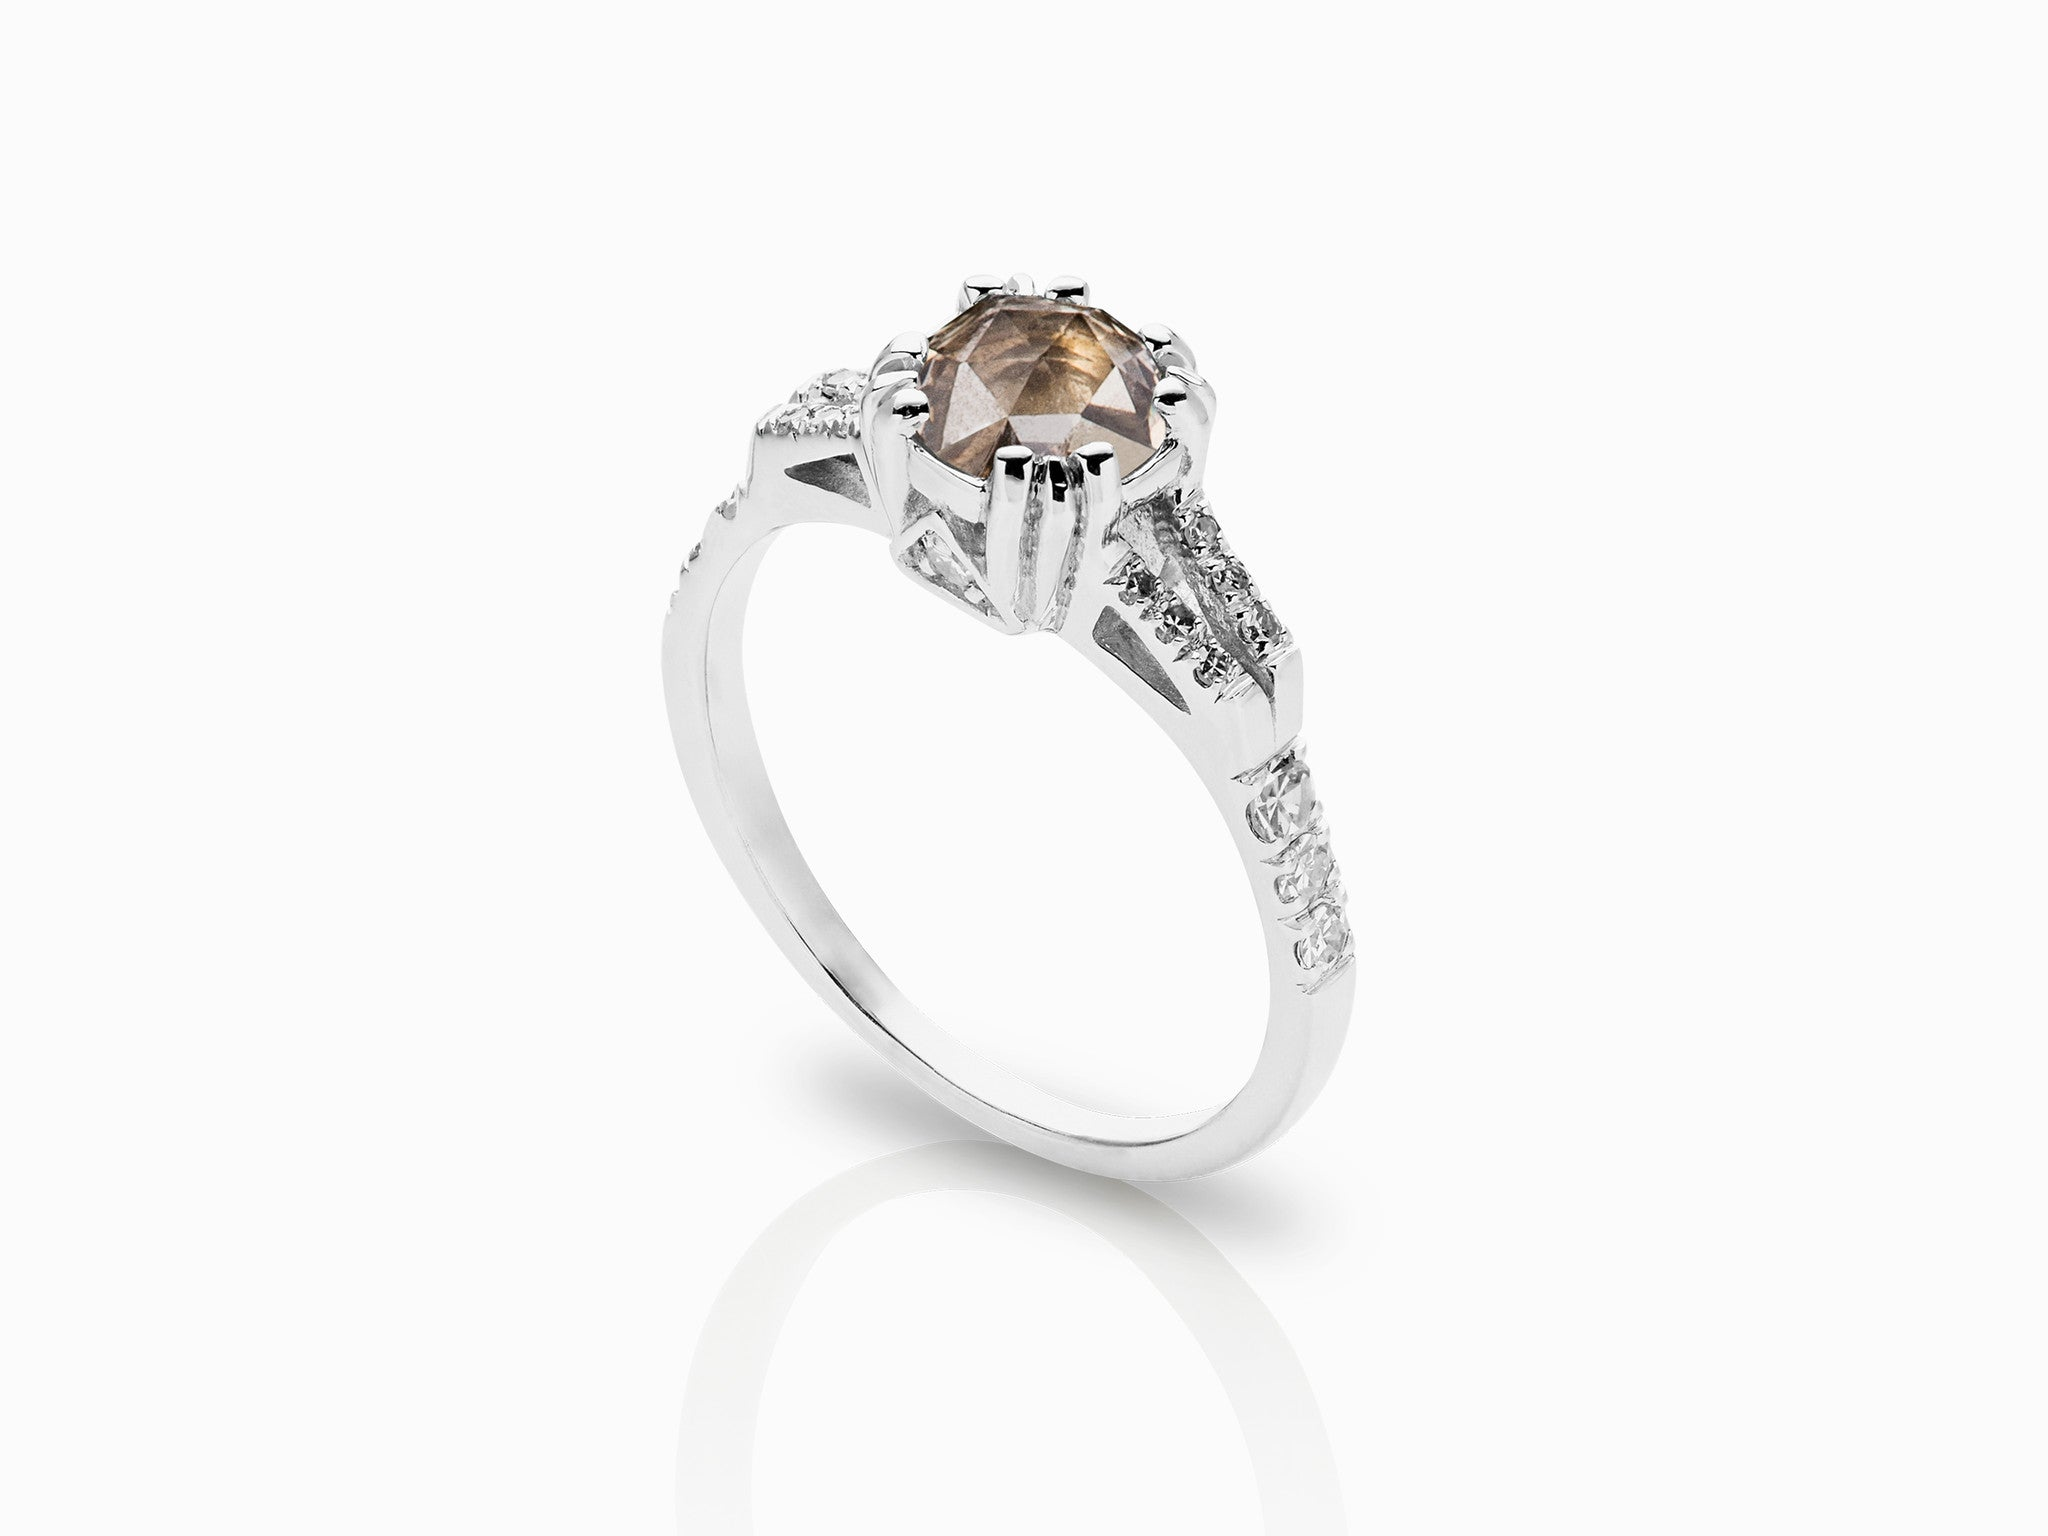 white rose all buy two cushion peach side rings gold stones champagne bezel sapphires ring promise engagement sapphire